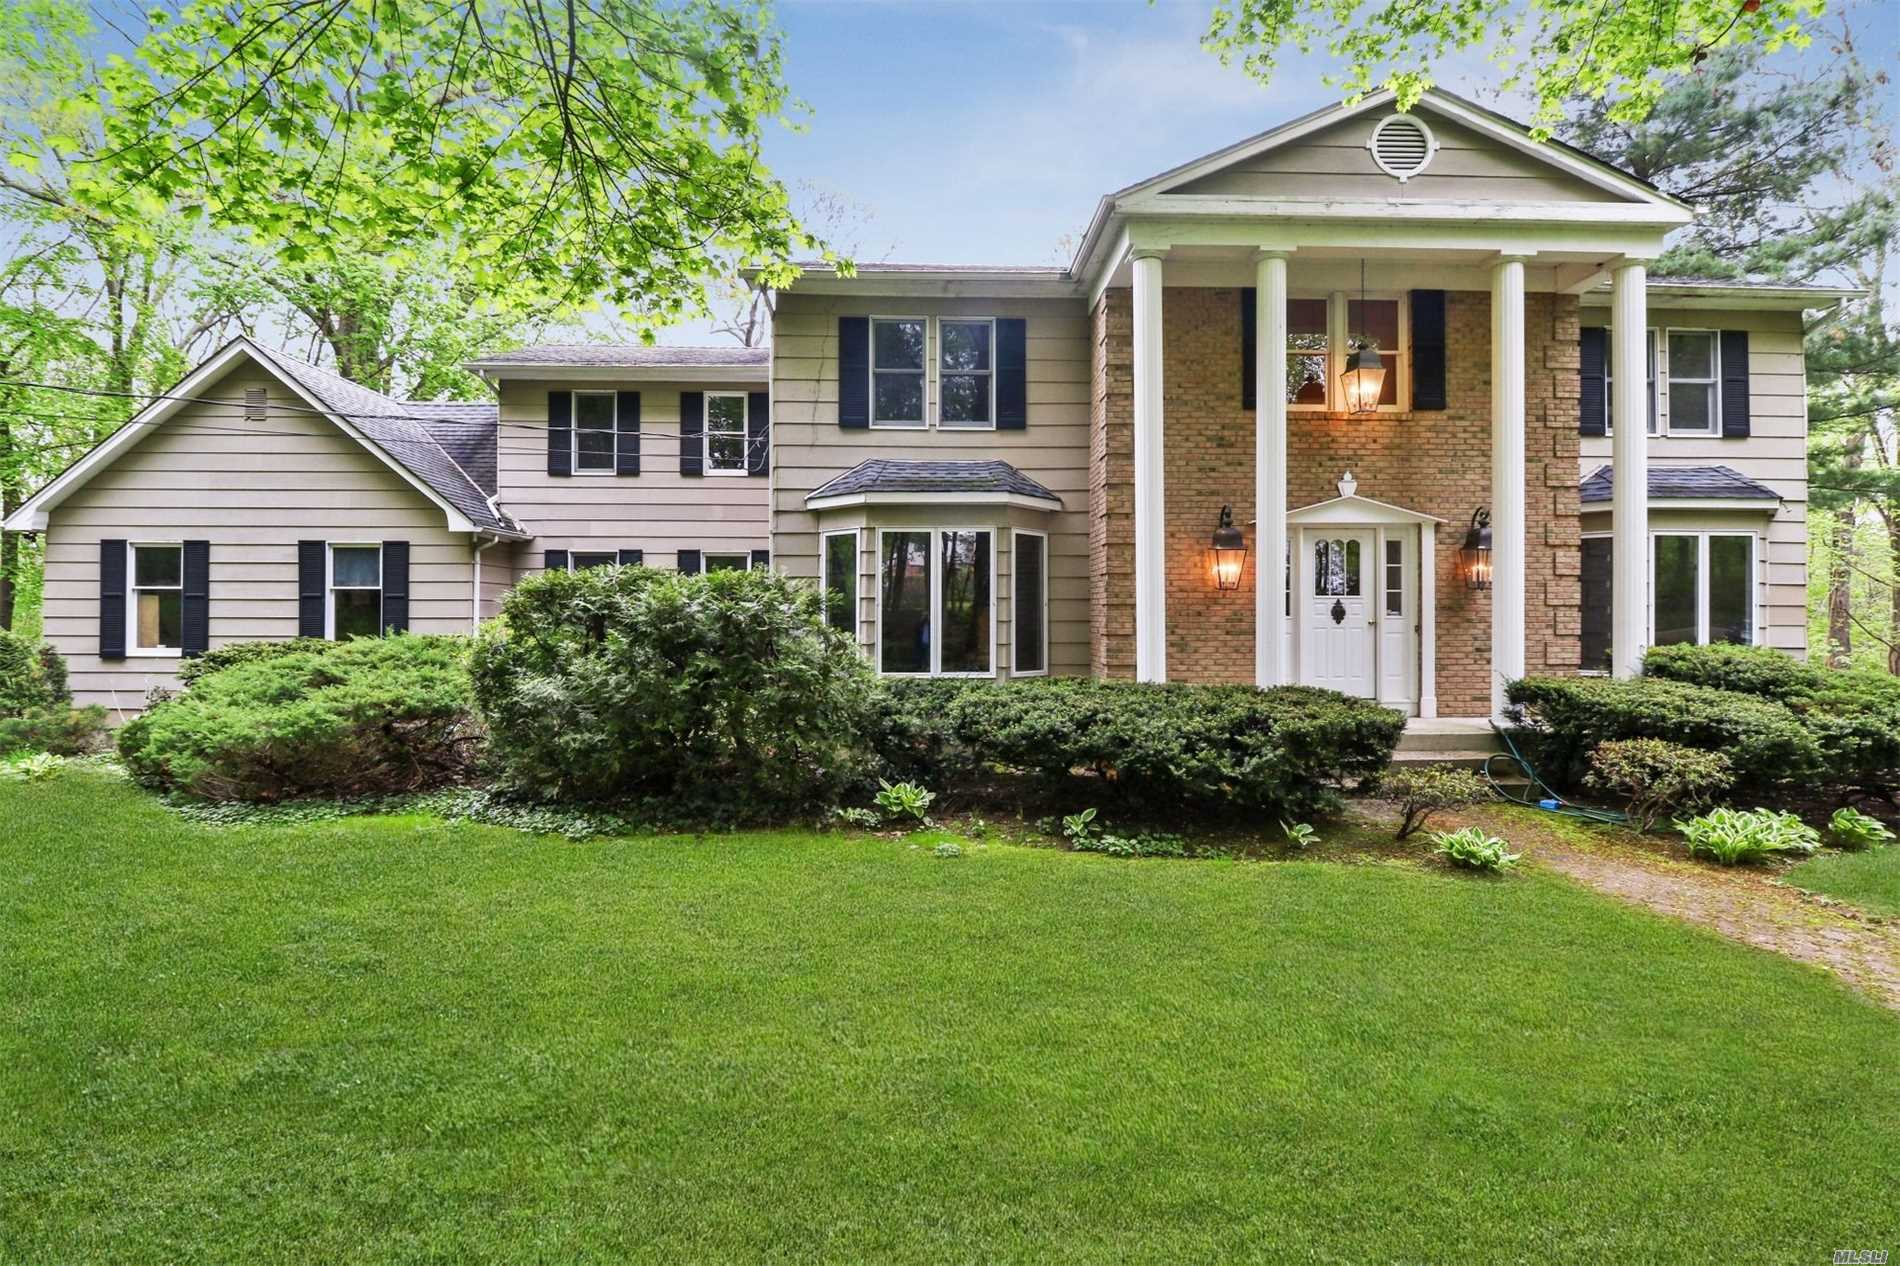 Beautiful Colonial Set On 5+ Acres Towards The End Of A Private Road Featuring 4 Spacious Bedrooms, Large Den & Sunken Living Room, Formal Dining Room, Maid Quarters, 3 Full Baths, 1 Half Bath, Large Eik W/ Brfst Bar, Full Unfin Basement W/Ose, Plumbing Ready. Master Suite Has Full Bth & Balcony. Pool With Wrap Around Deck